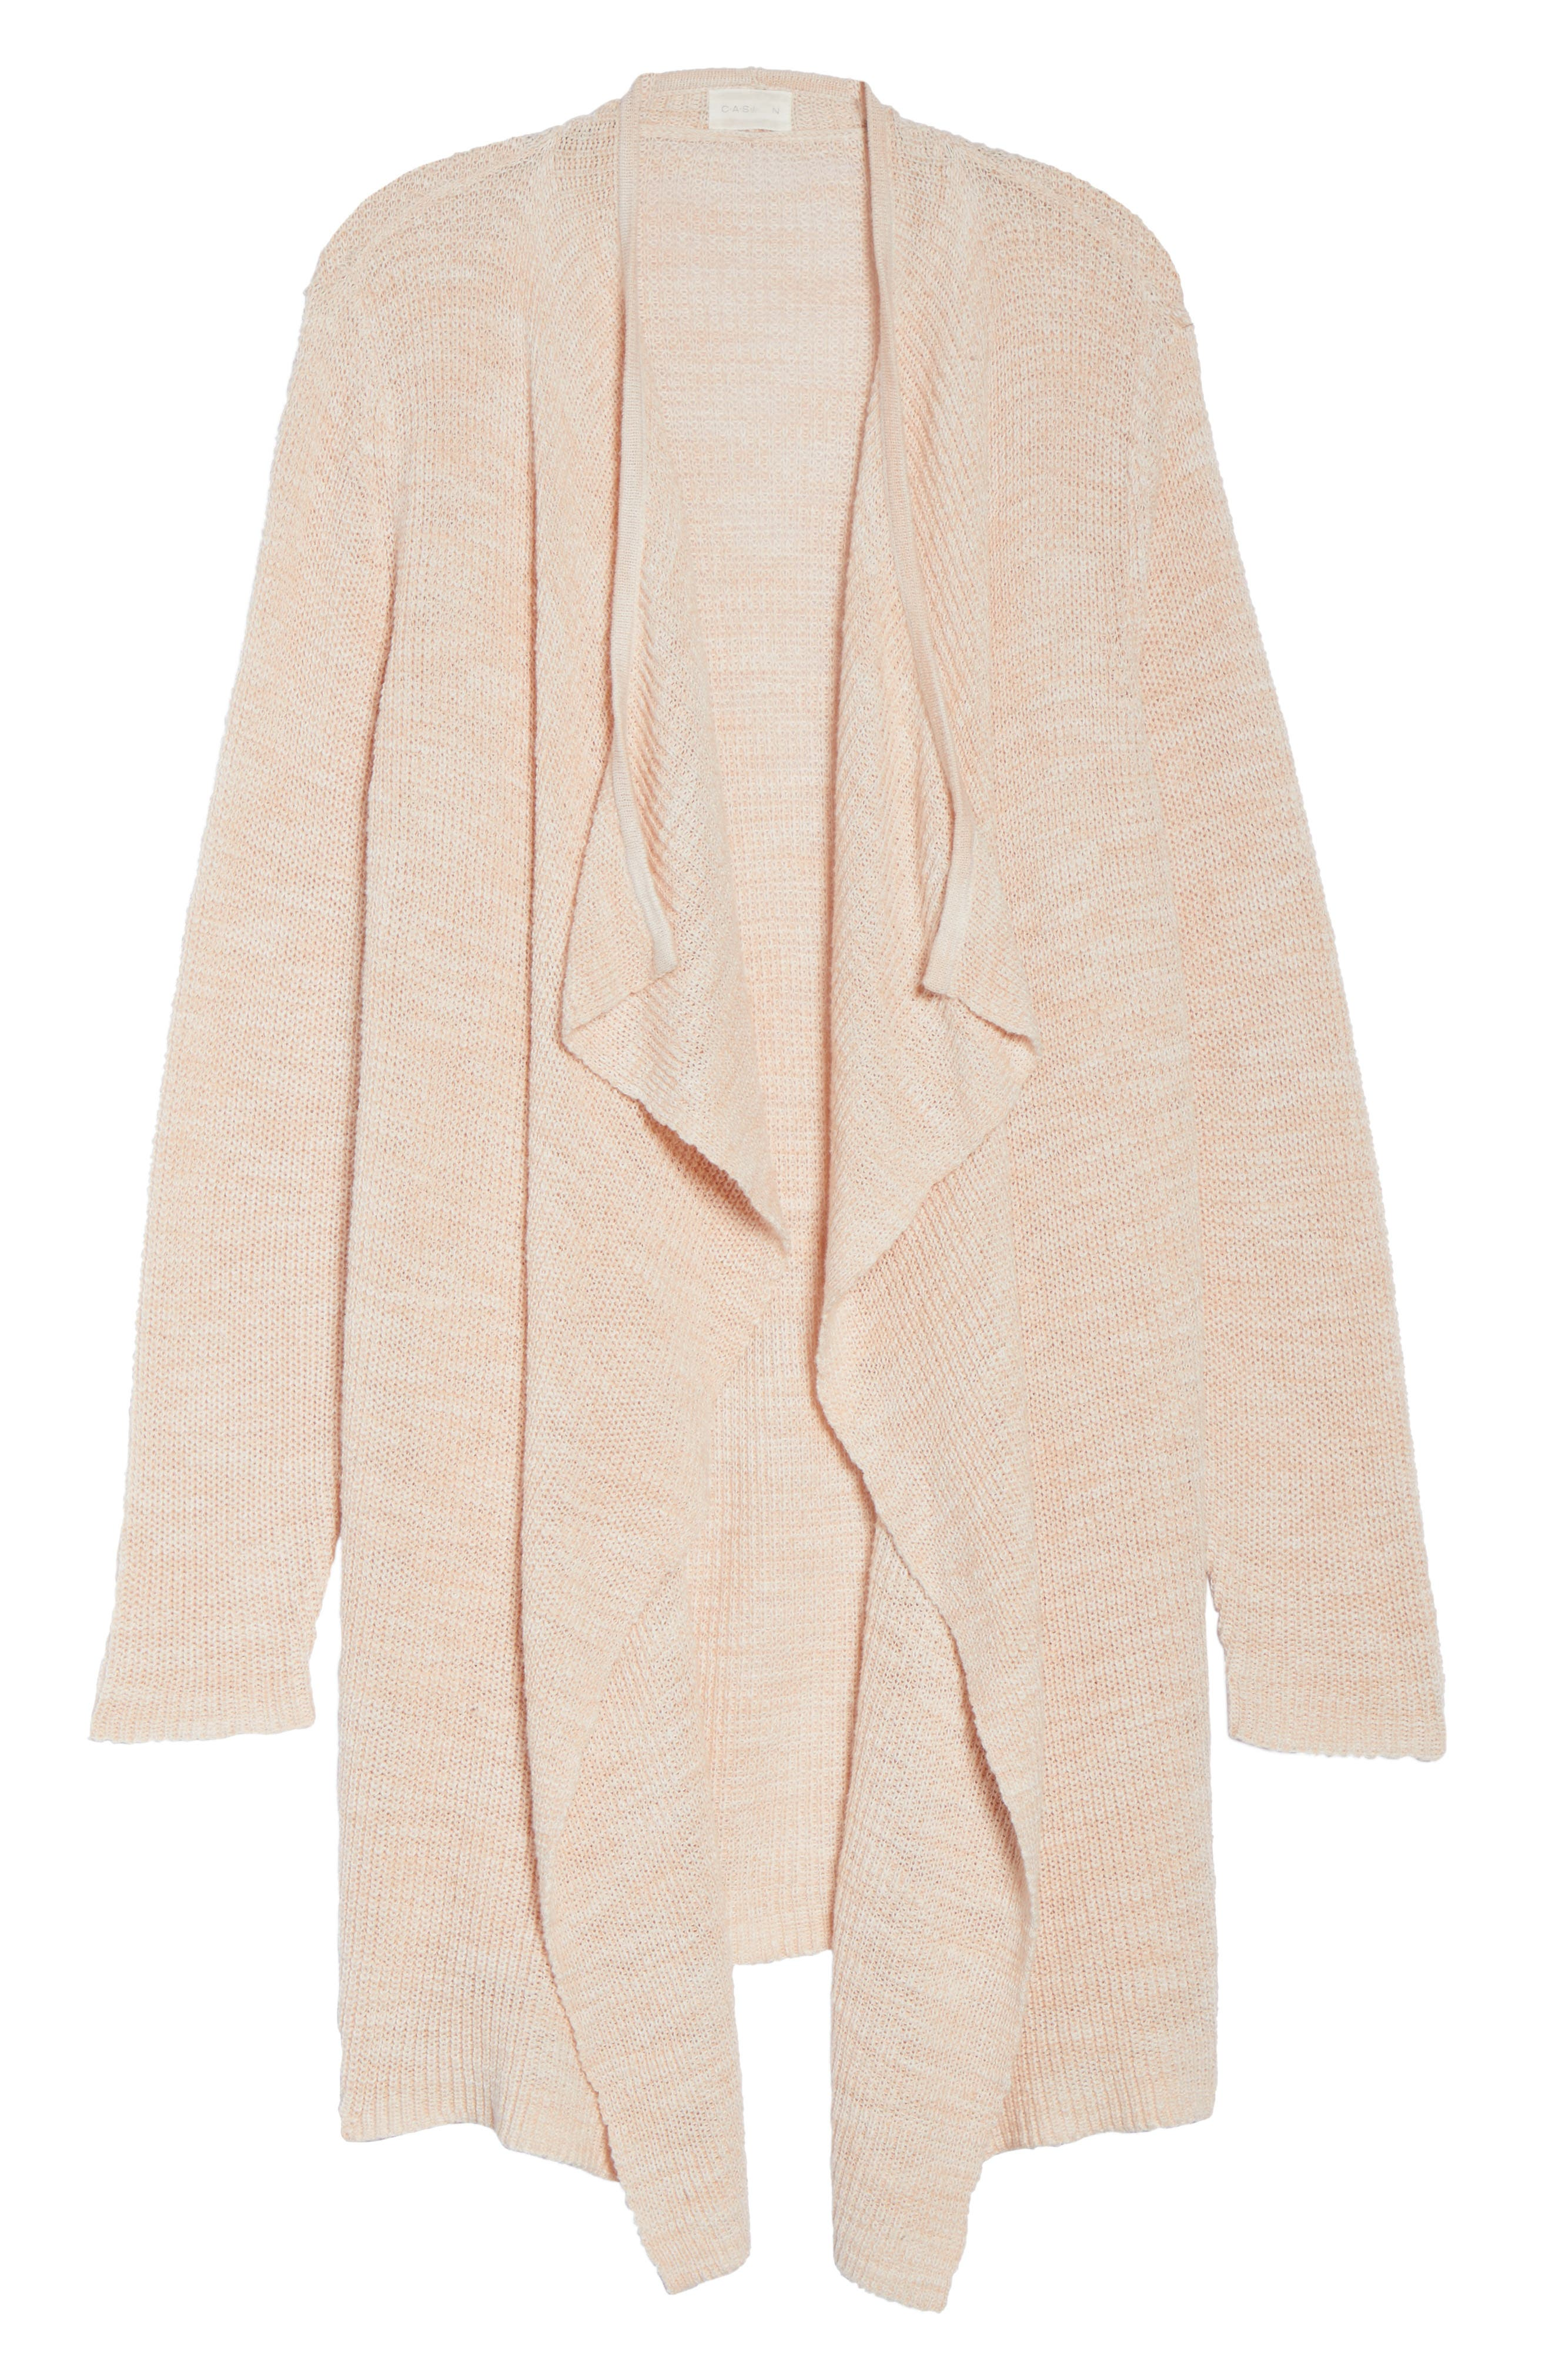 Drape Front Long Cardigan,                             Alternate thumbnail 6, color,                             Beige-Ivory Marl